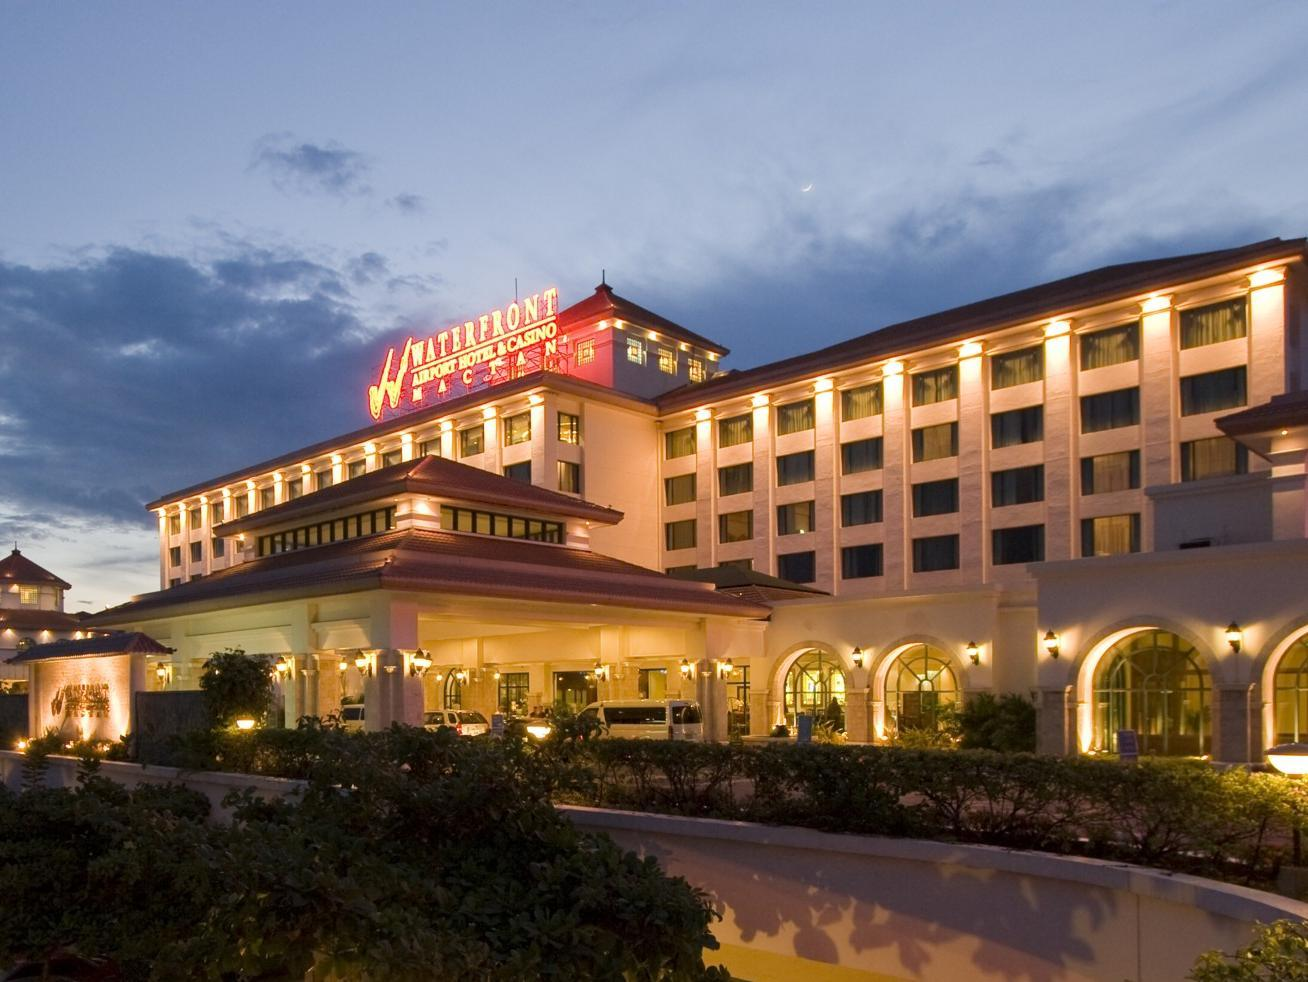 Waterfront Airport Hotel and Casino Cebu-Stadt - Hotel Aussenansicht